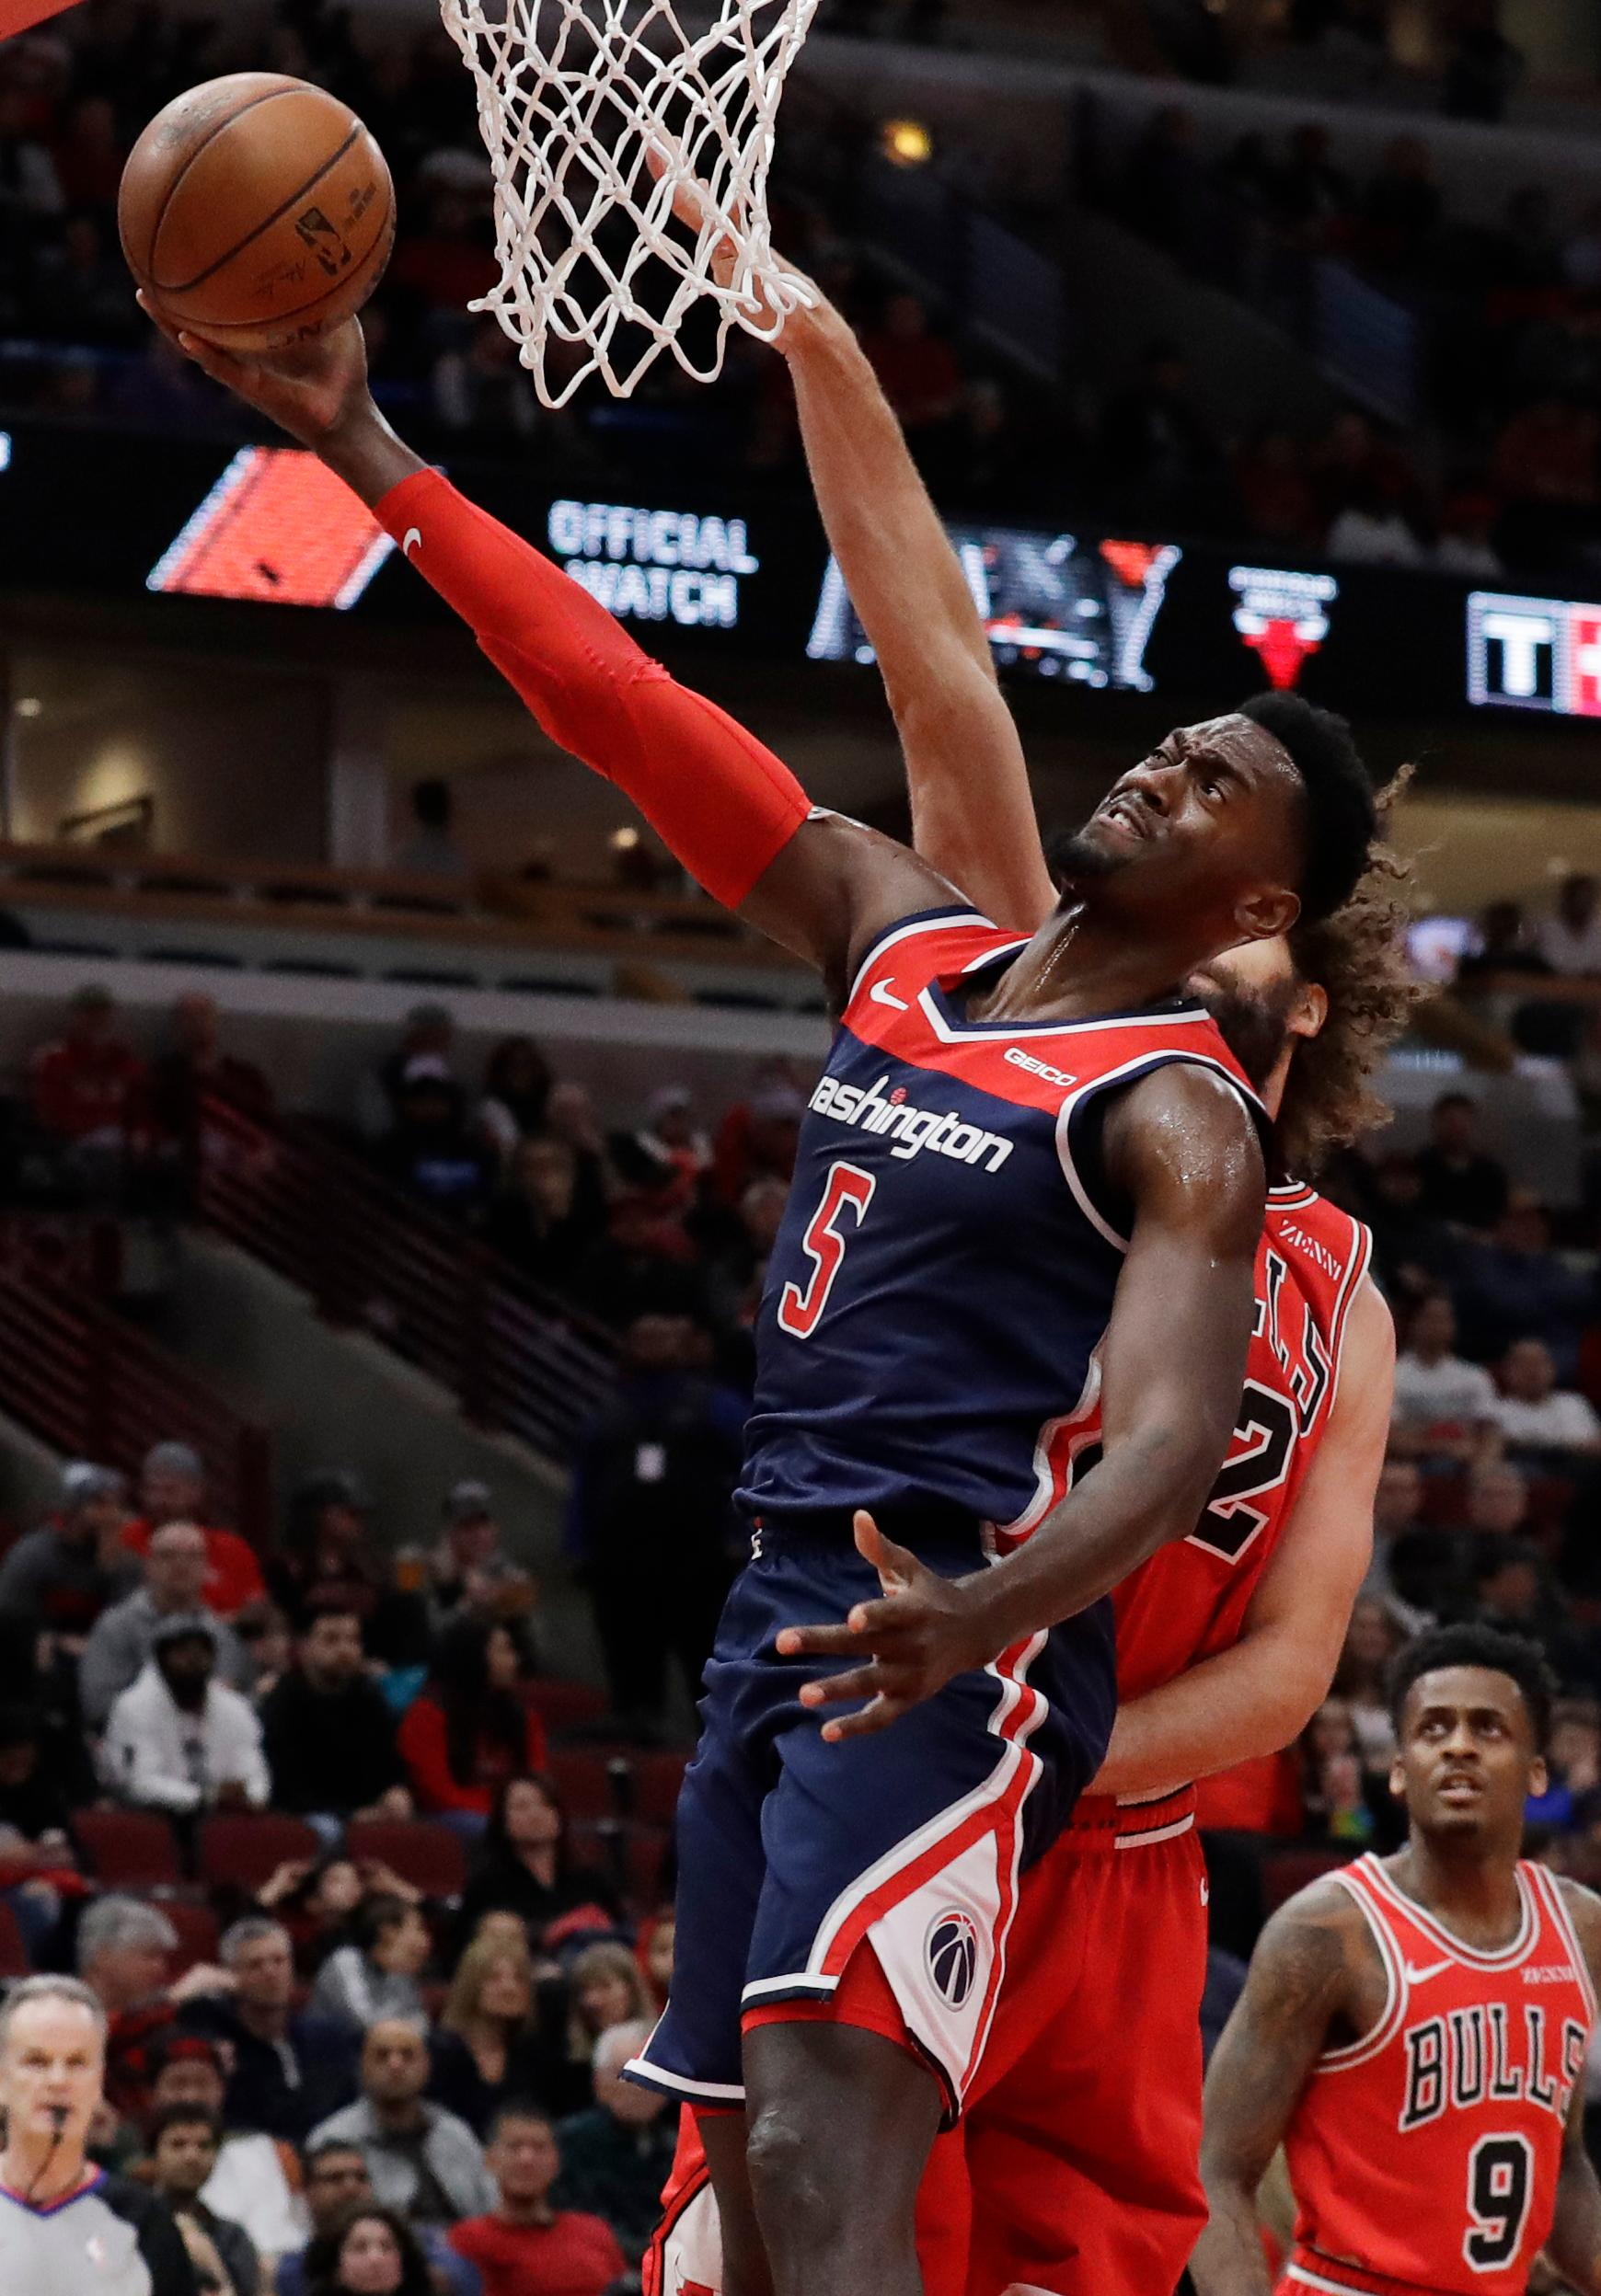 Washington Wizards forward Bobby Portis drives to the basket against Chicago Bulls center Robin Lopez during the first half of an NBA basketball game Wednesday, March 20, 2019, in Chicago. (AP Photo/Nam Y. Huh)